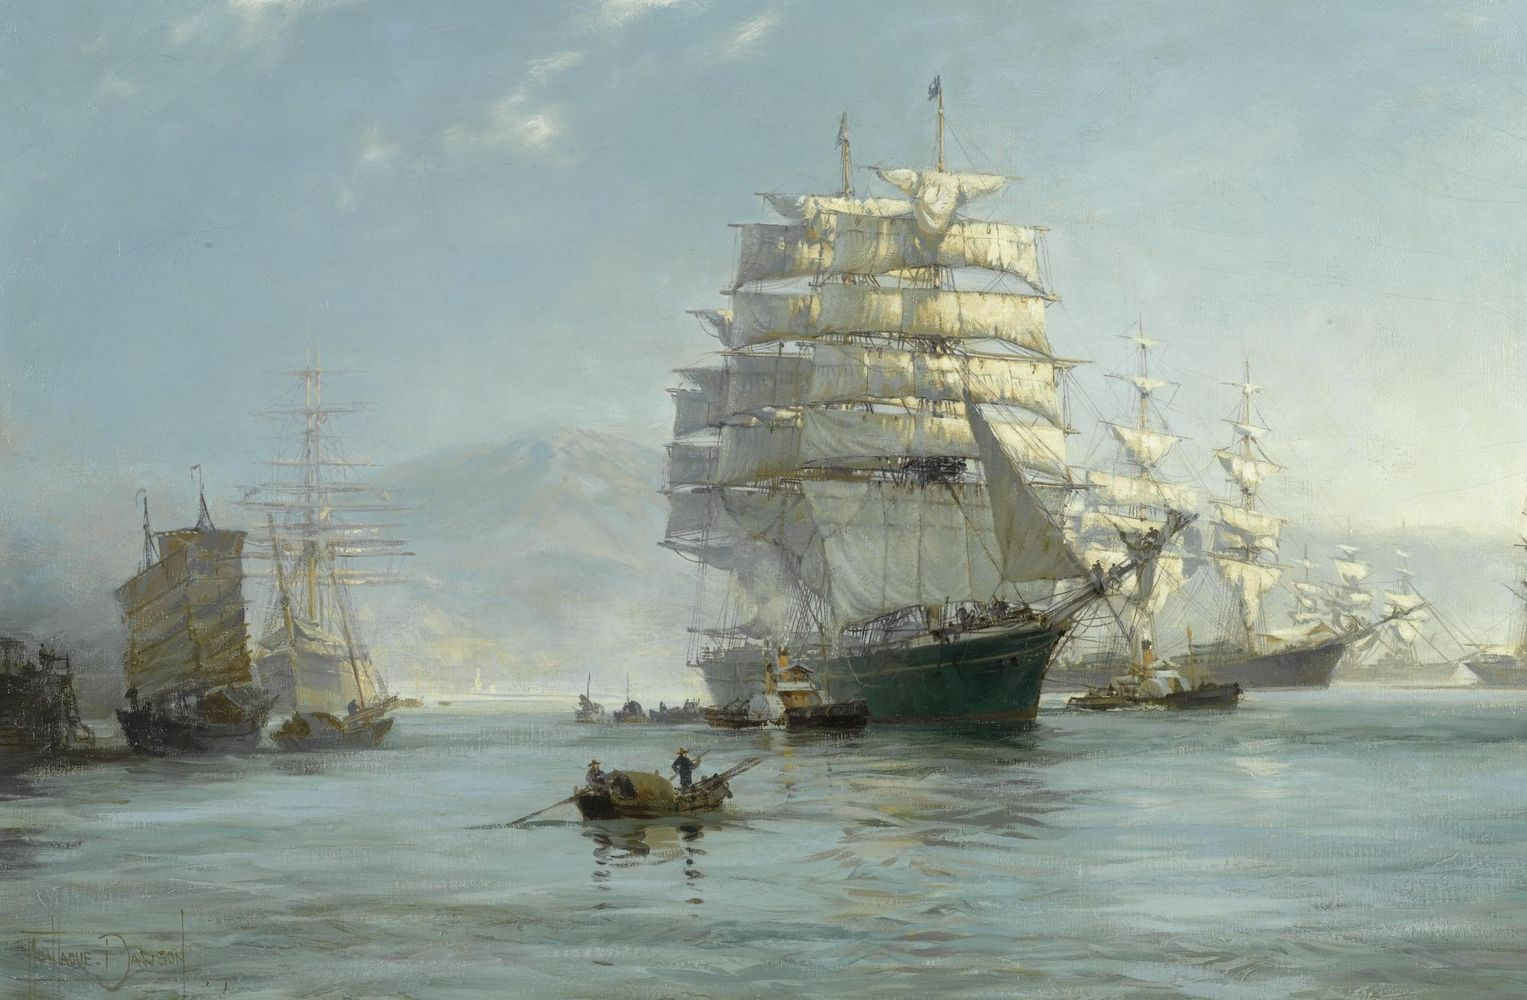 Chinese PortMorning Departure, Montague Dawson Ship